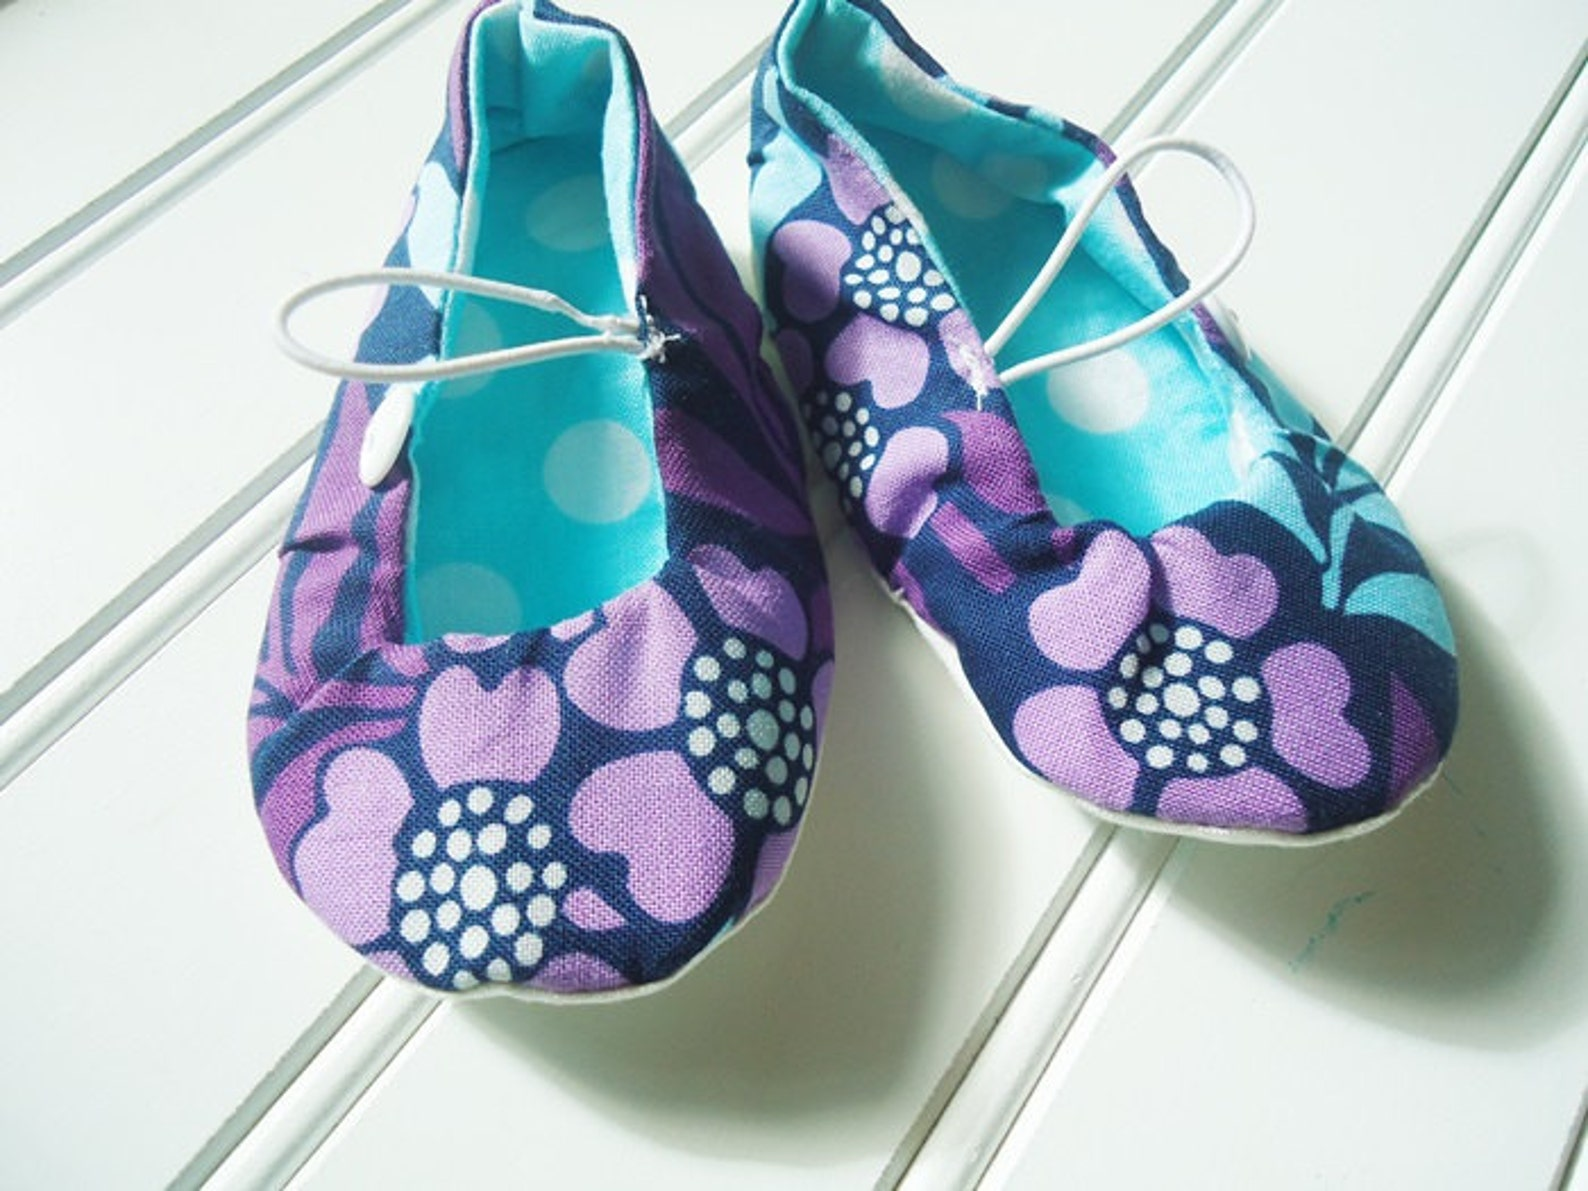 ballet flat slippers - purple and blue floral {size 6 months}